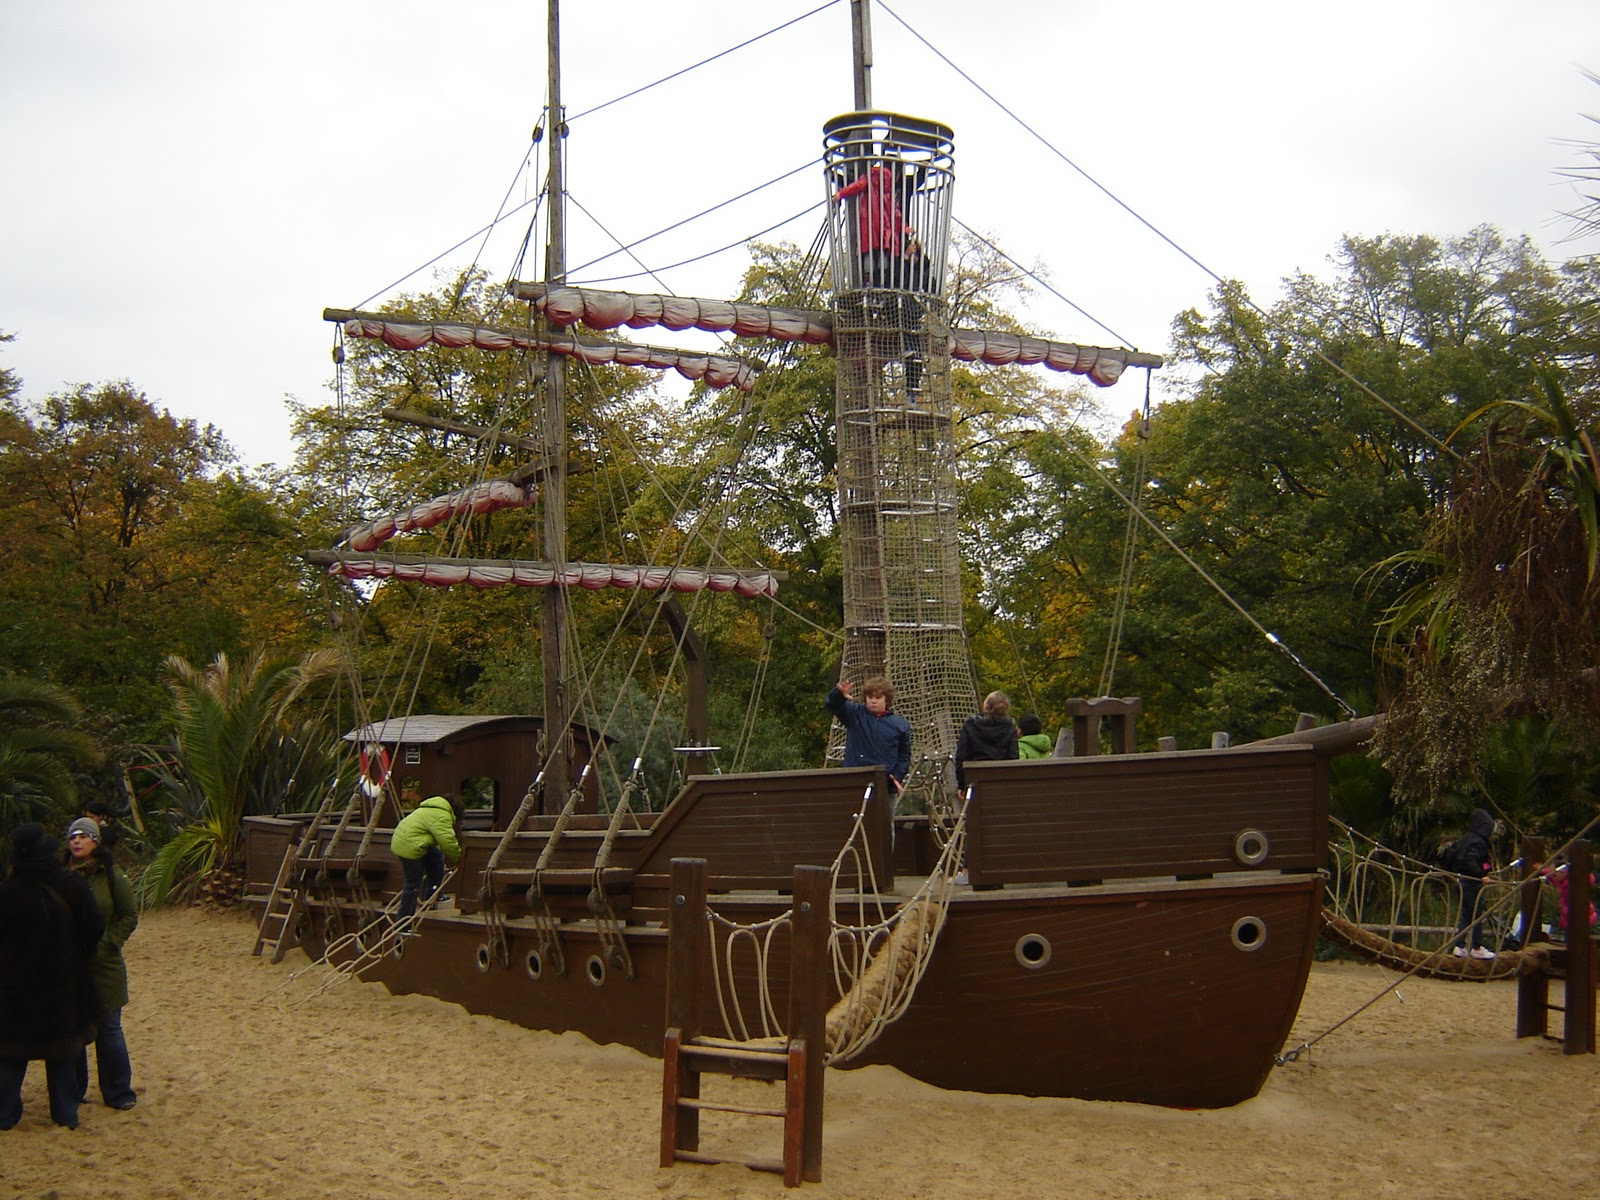 Pirate boat building boat design forums - Pirate ship wooden playground ...